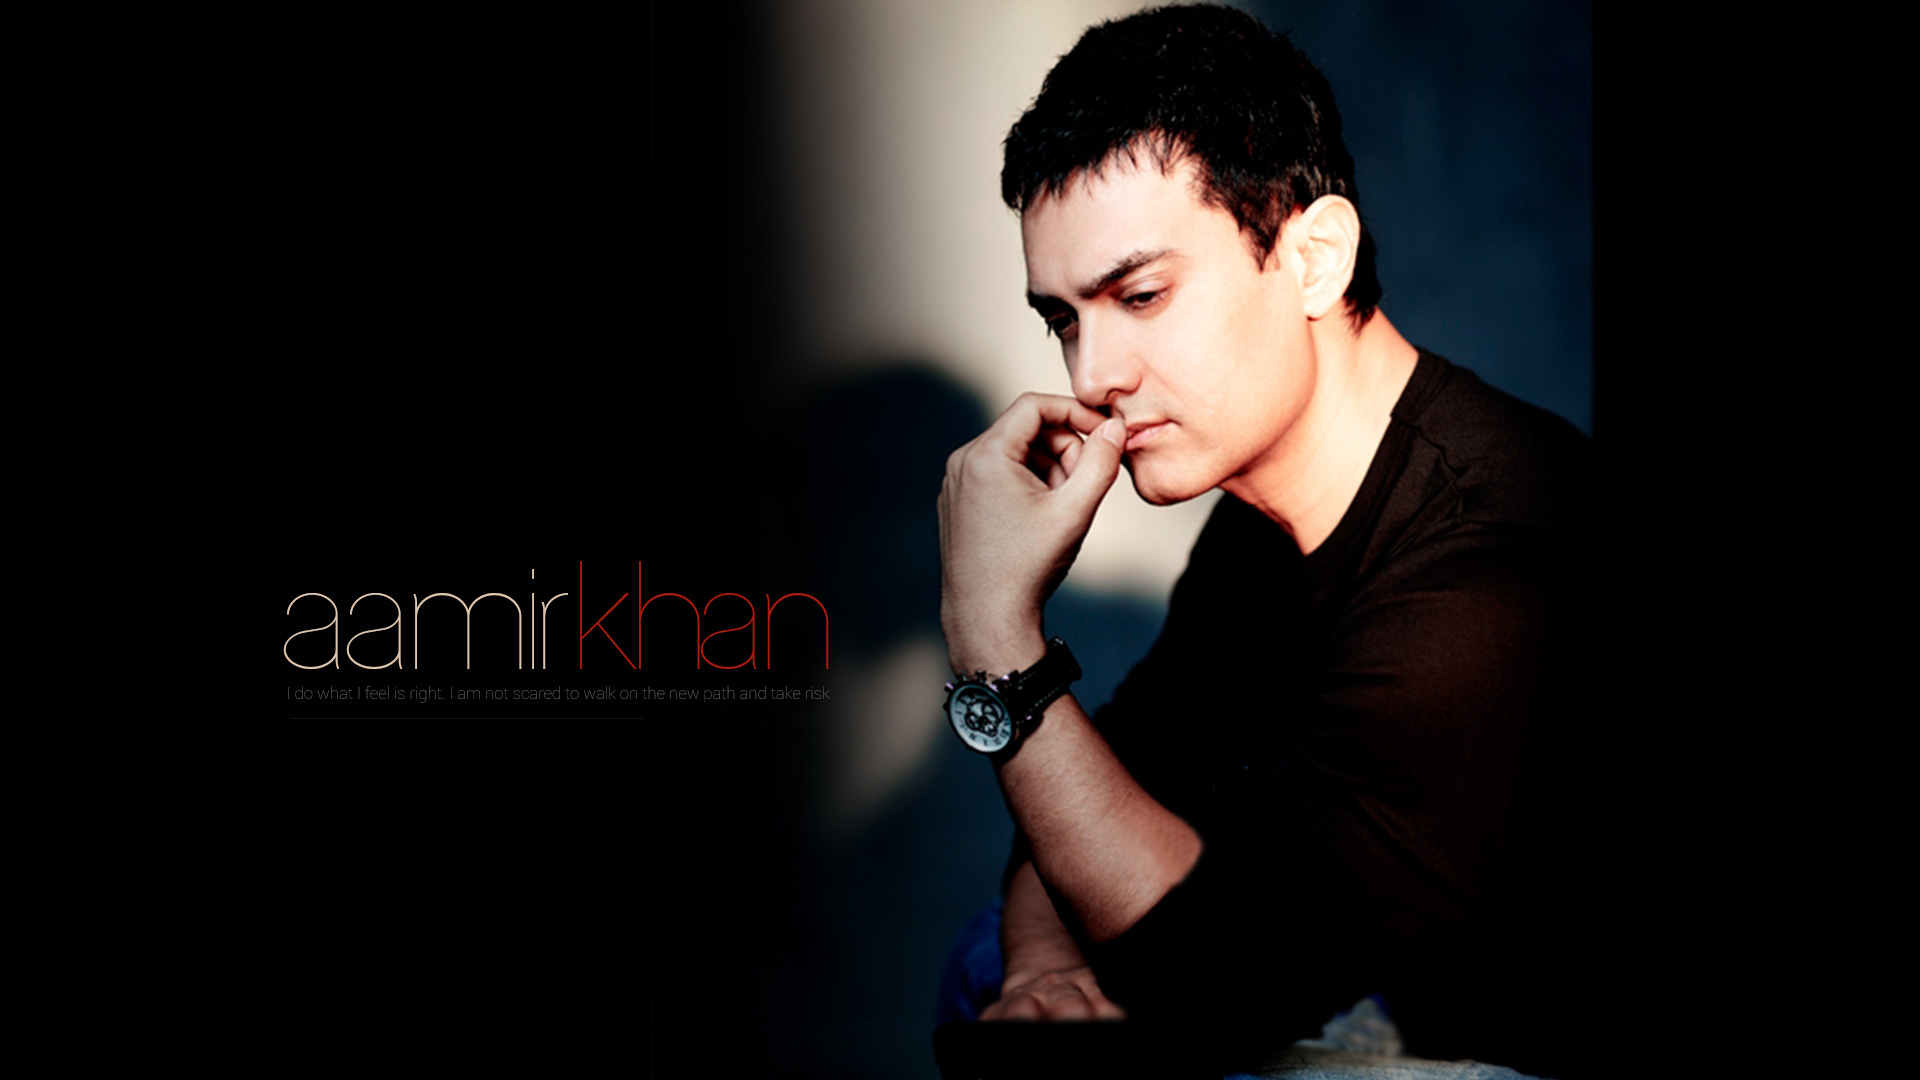 Aamir Khan Wallpapers High Resolution and Quality Download 1920x1080